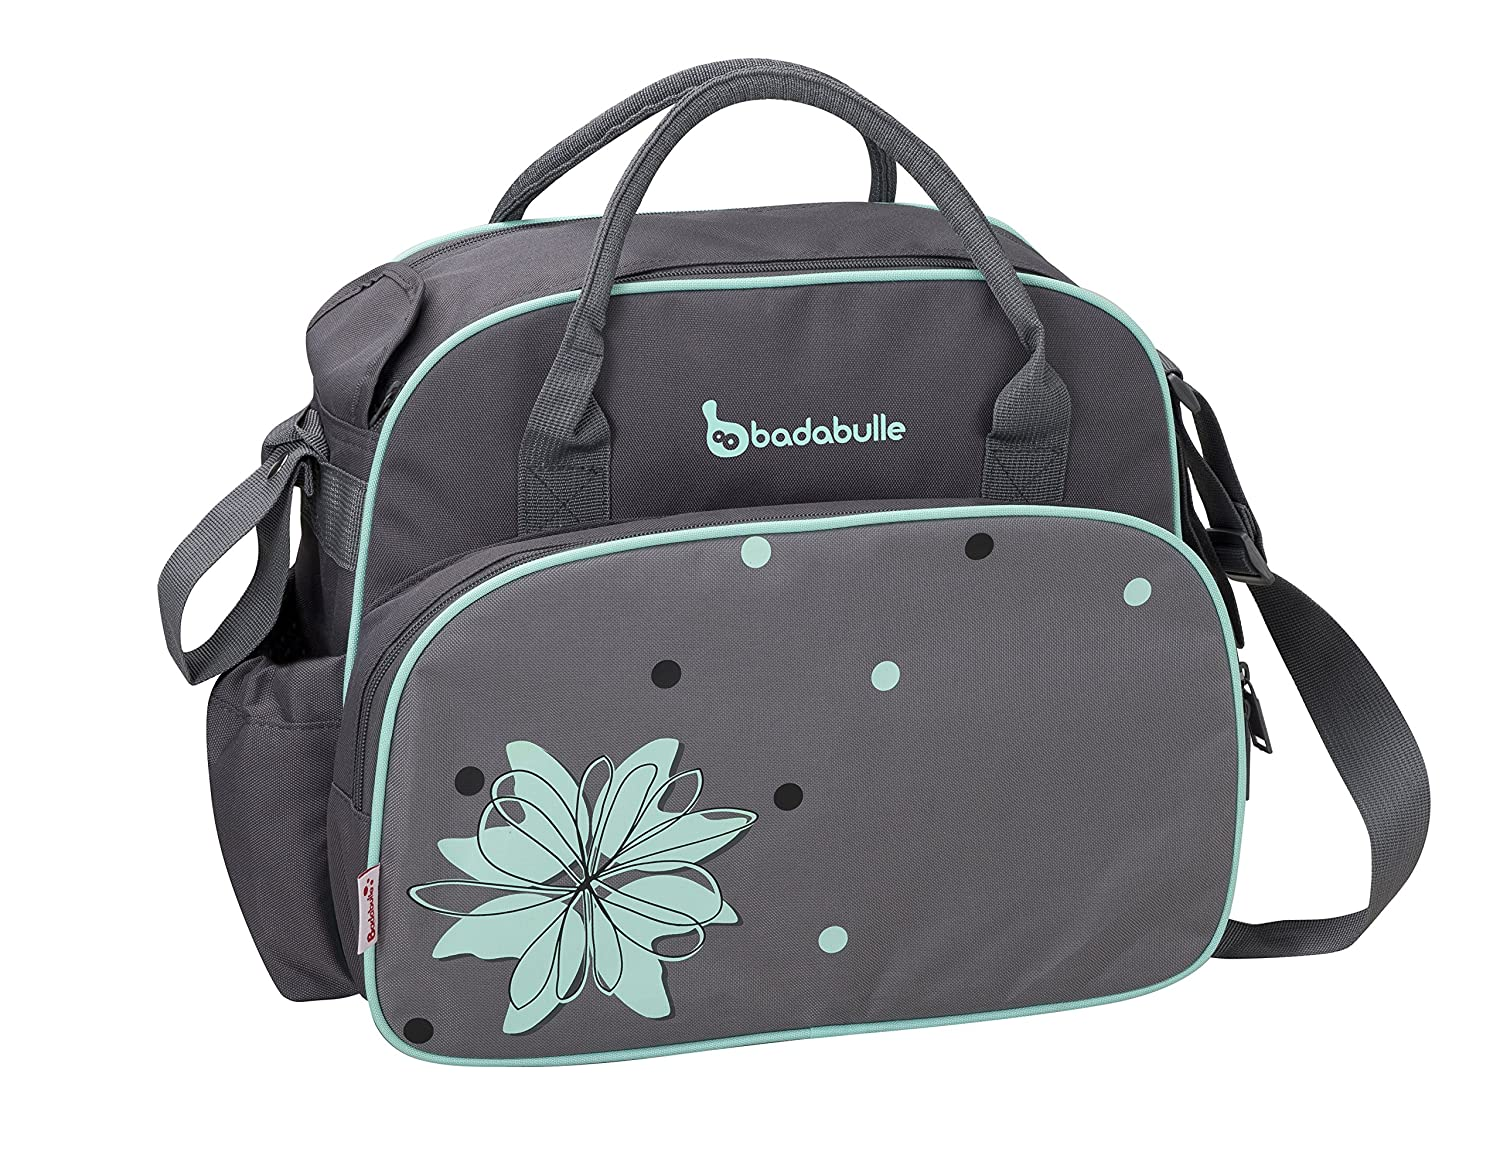 Badabulle Vintage Baby Changing Bag (Grey/Blue) B043014